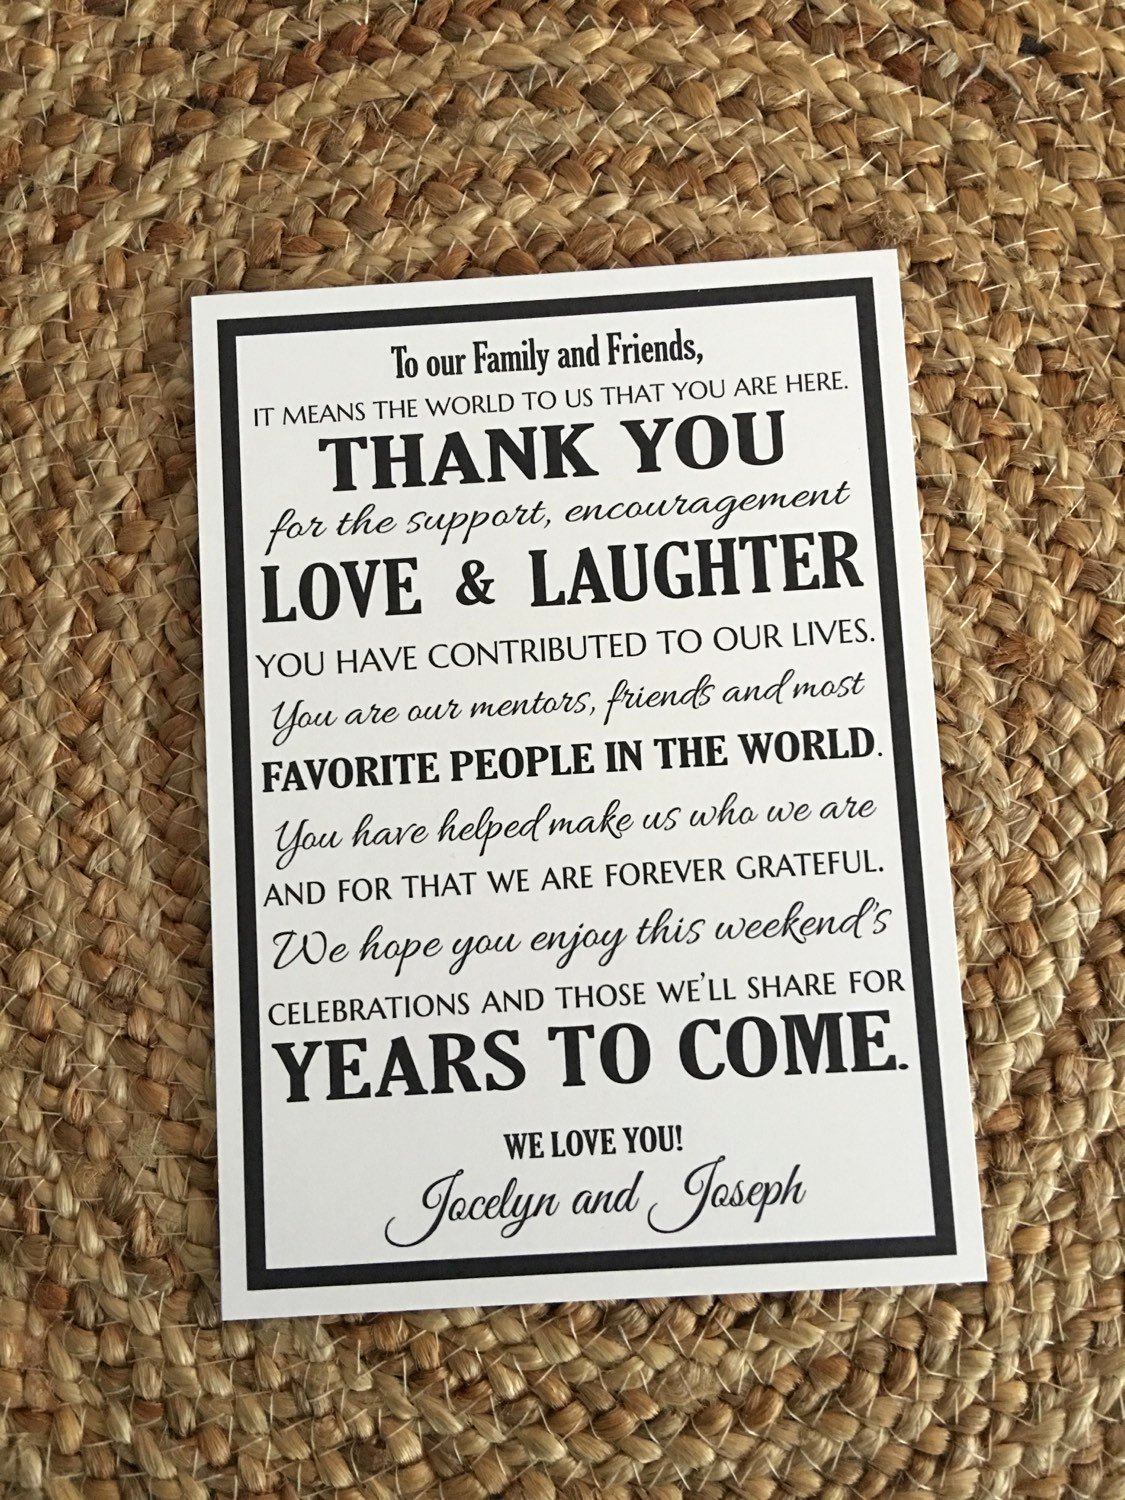 Sample Wedding Welcome Letter Lovely Wedding Wel E Letter Destination Wedding Wel E Wedding